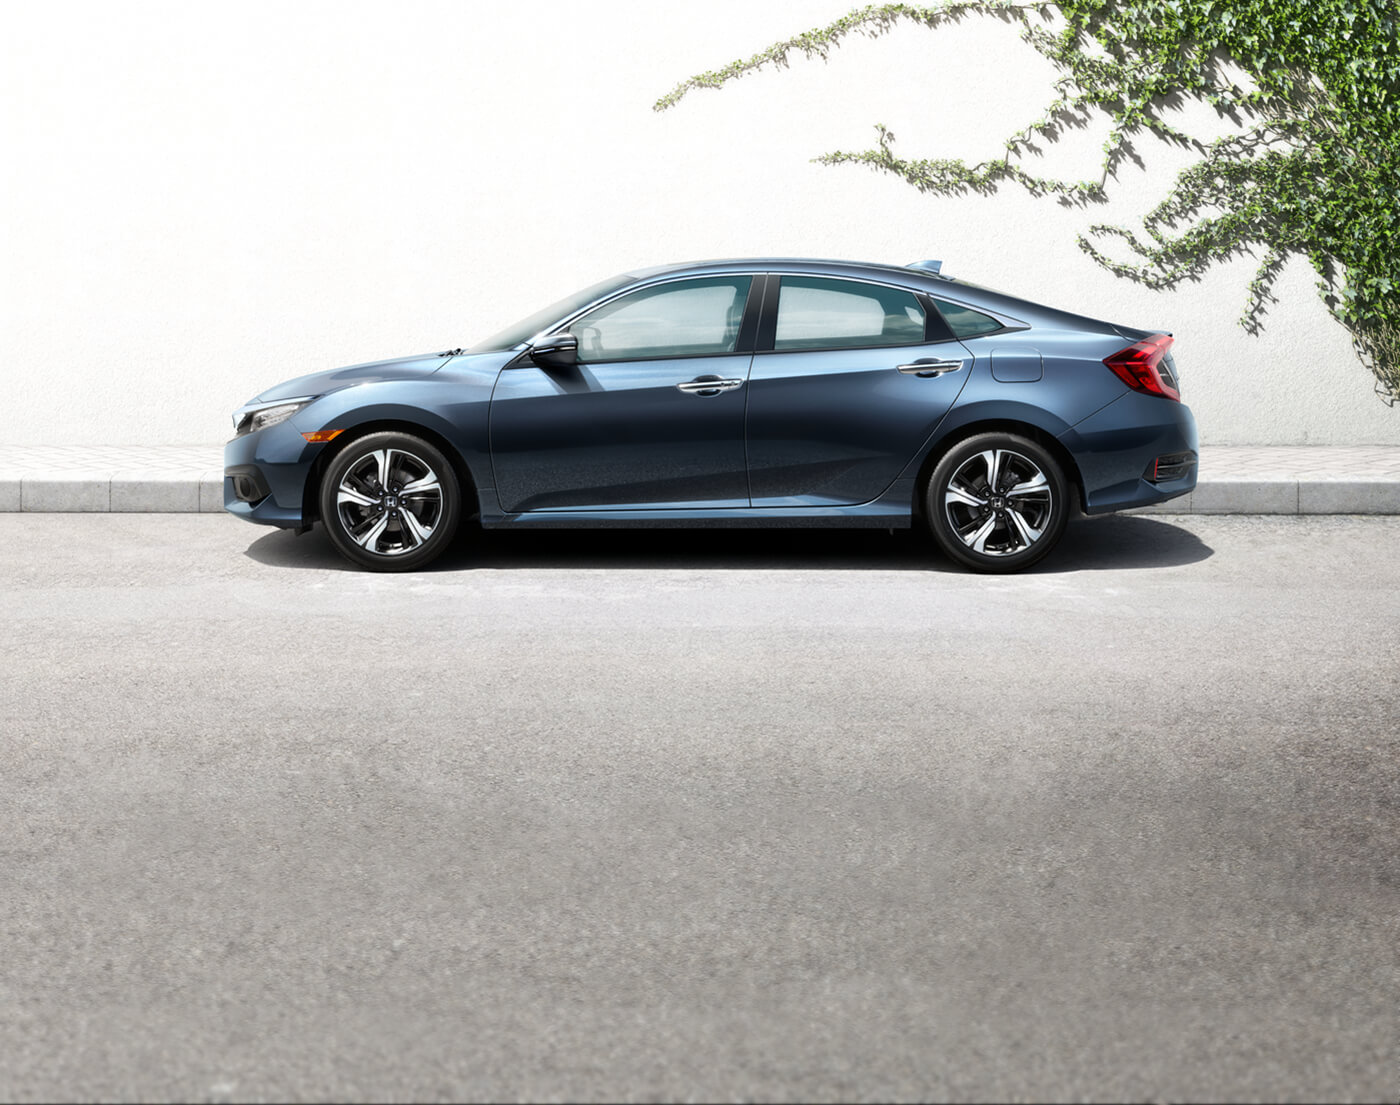 2017 honda civic rocky mountain honda dealers rubansaba